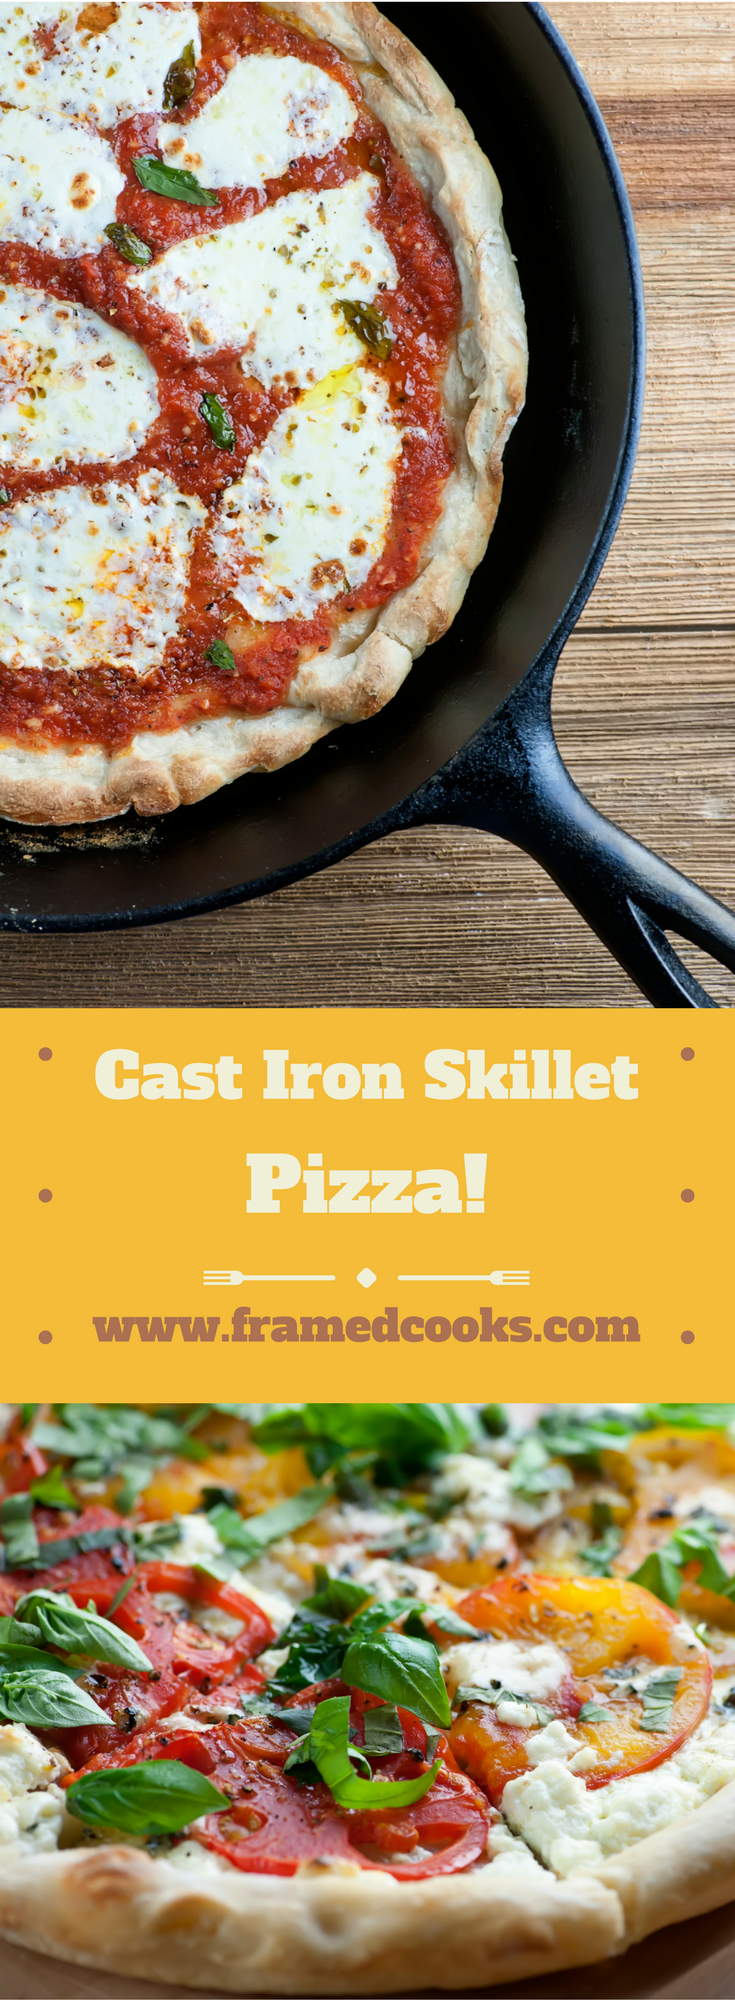 Cast iron skillet pizza can be customized all different ways with this easy recipe.  From classic tomato and cheese to anything you can dream up!